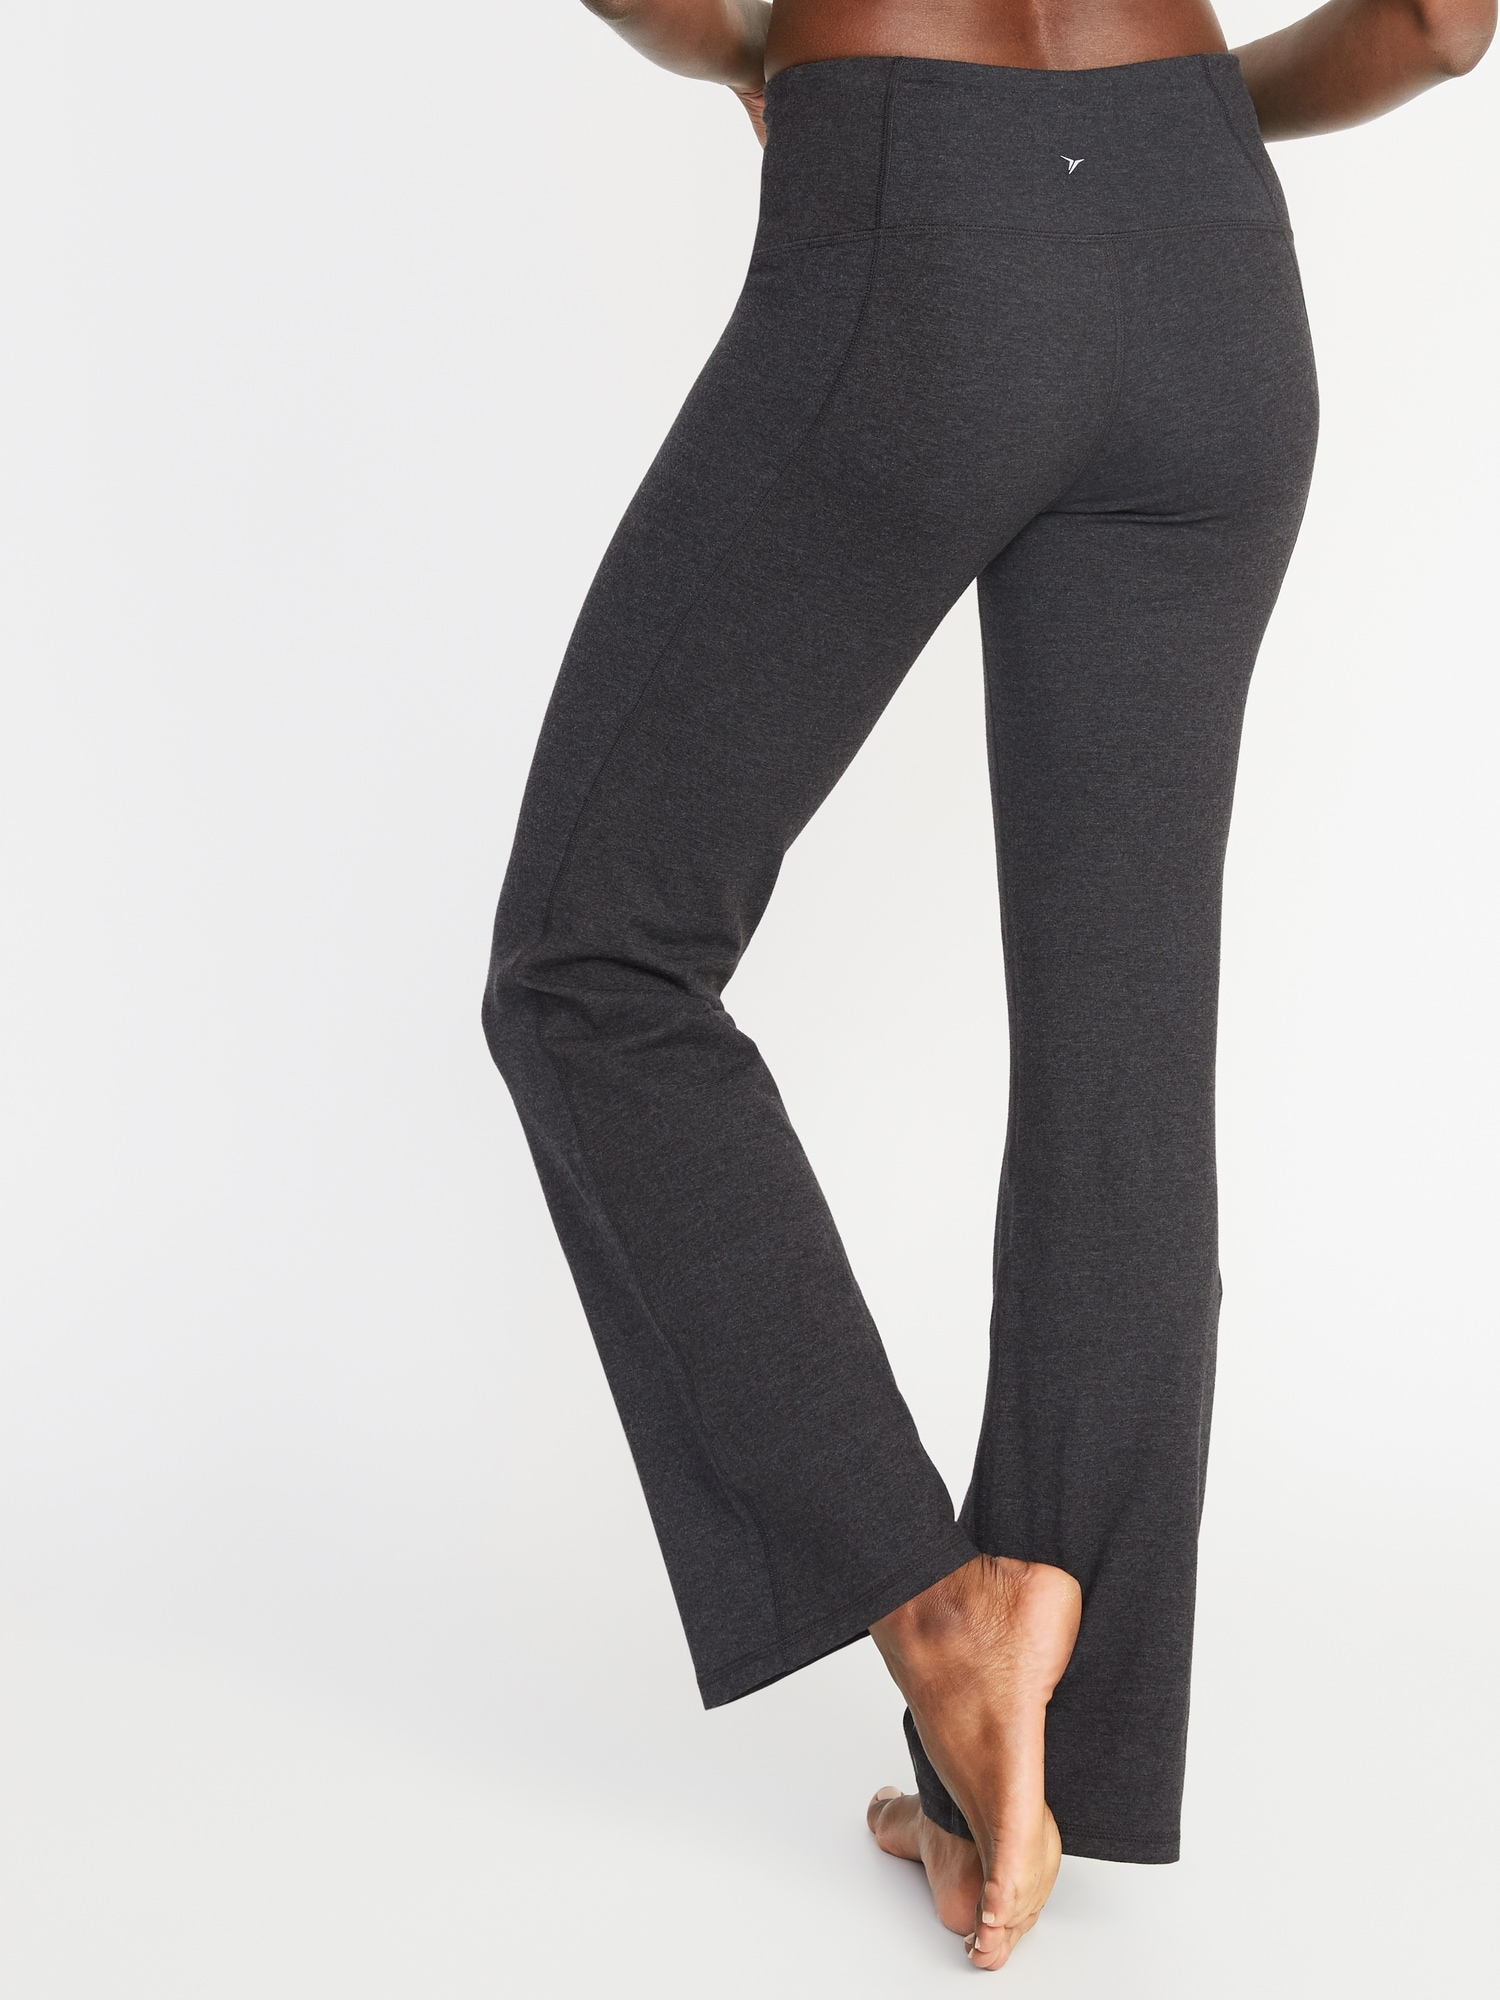 Yoga Pants Pictures : pants, pictures, High-Waisted, Boot-Cut, Pants, Women